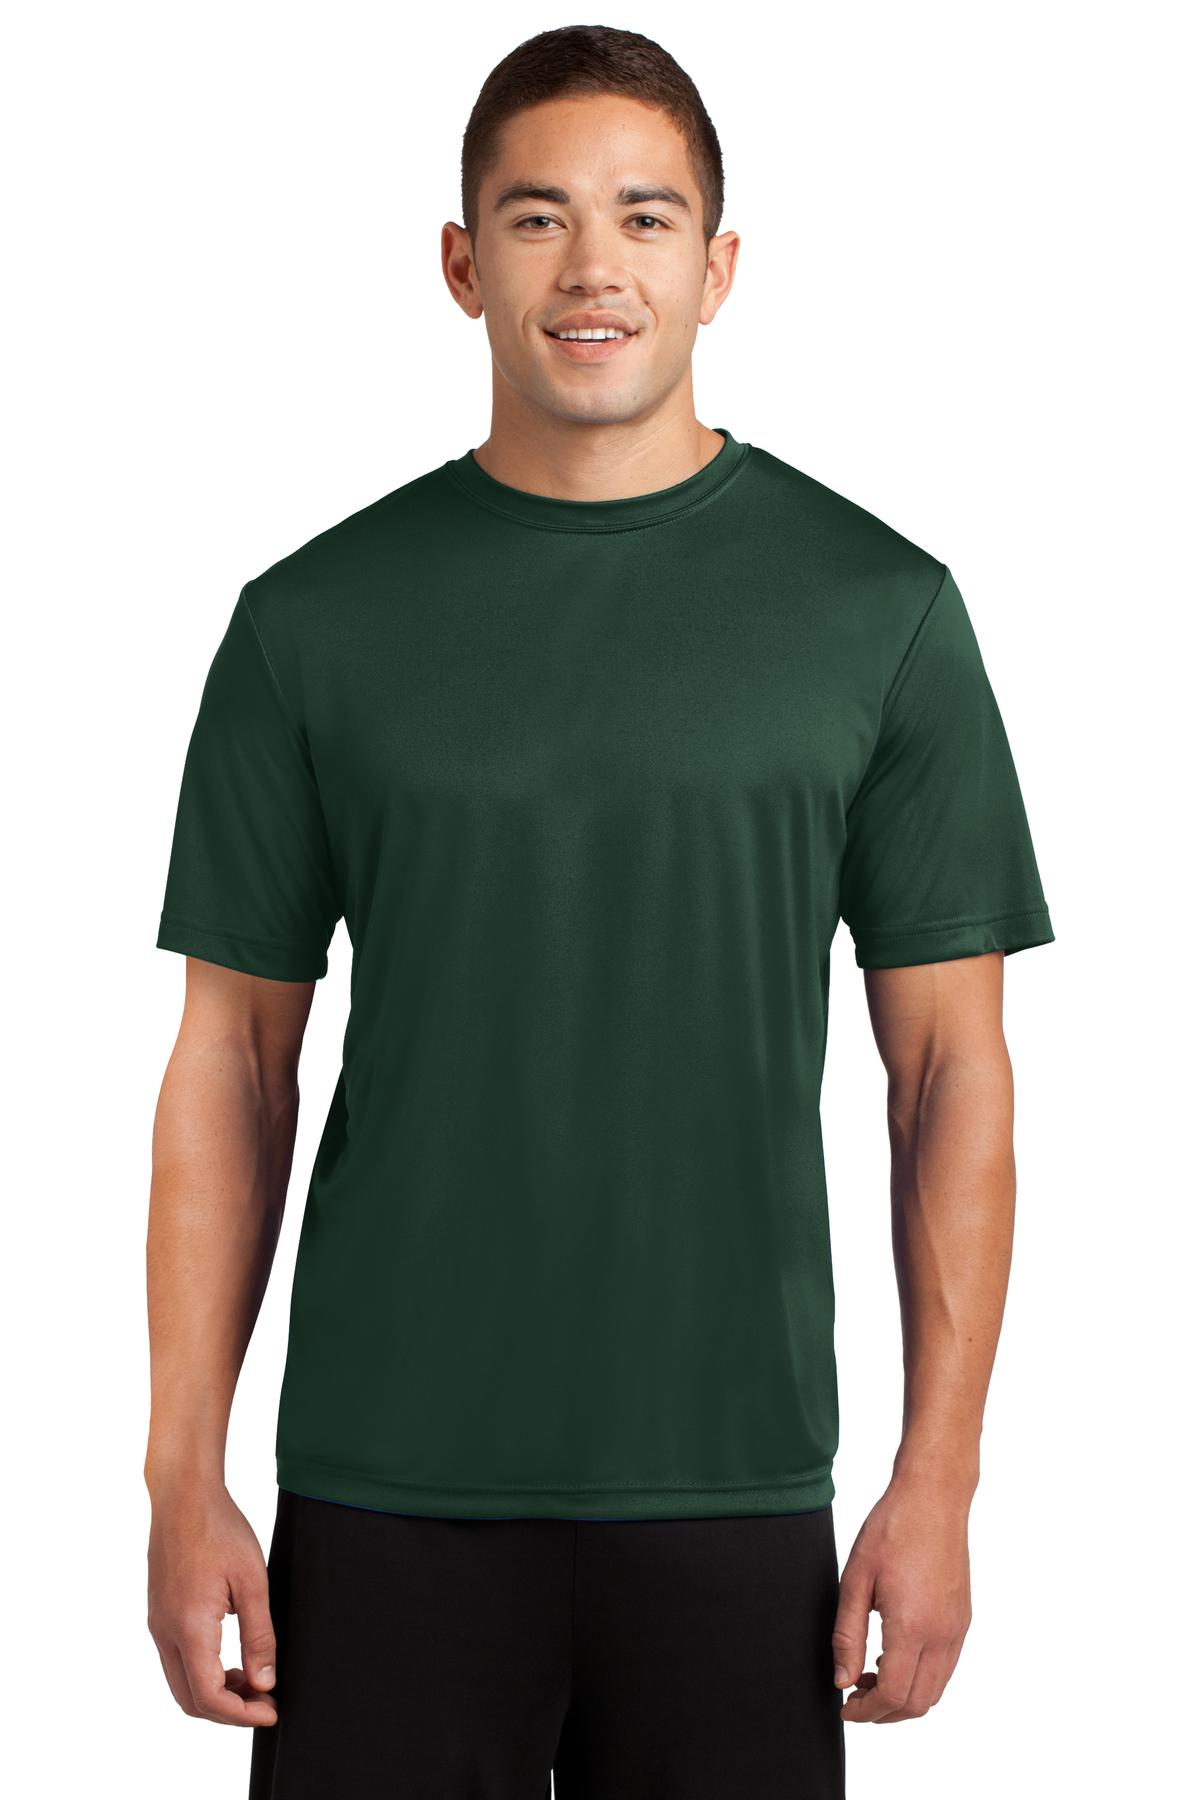 Sport-Tek ®  PosiCharge ®  Competitor™ Tee. ST350 - Forest Green